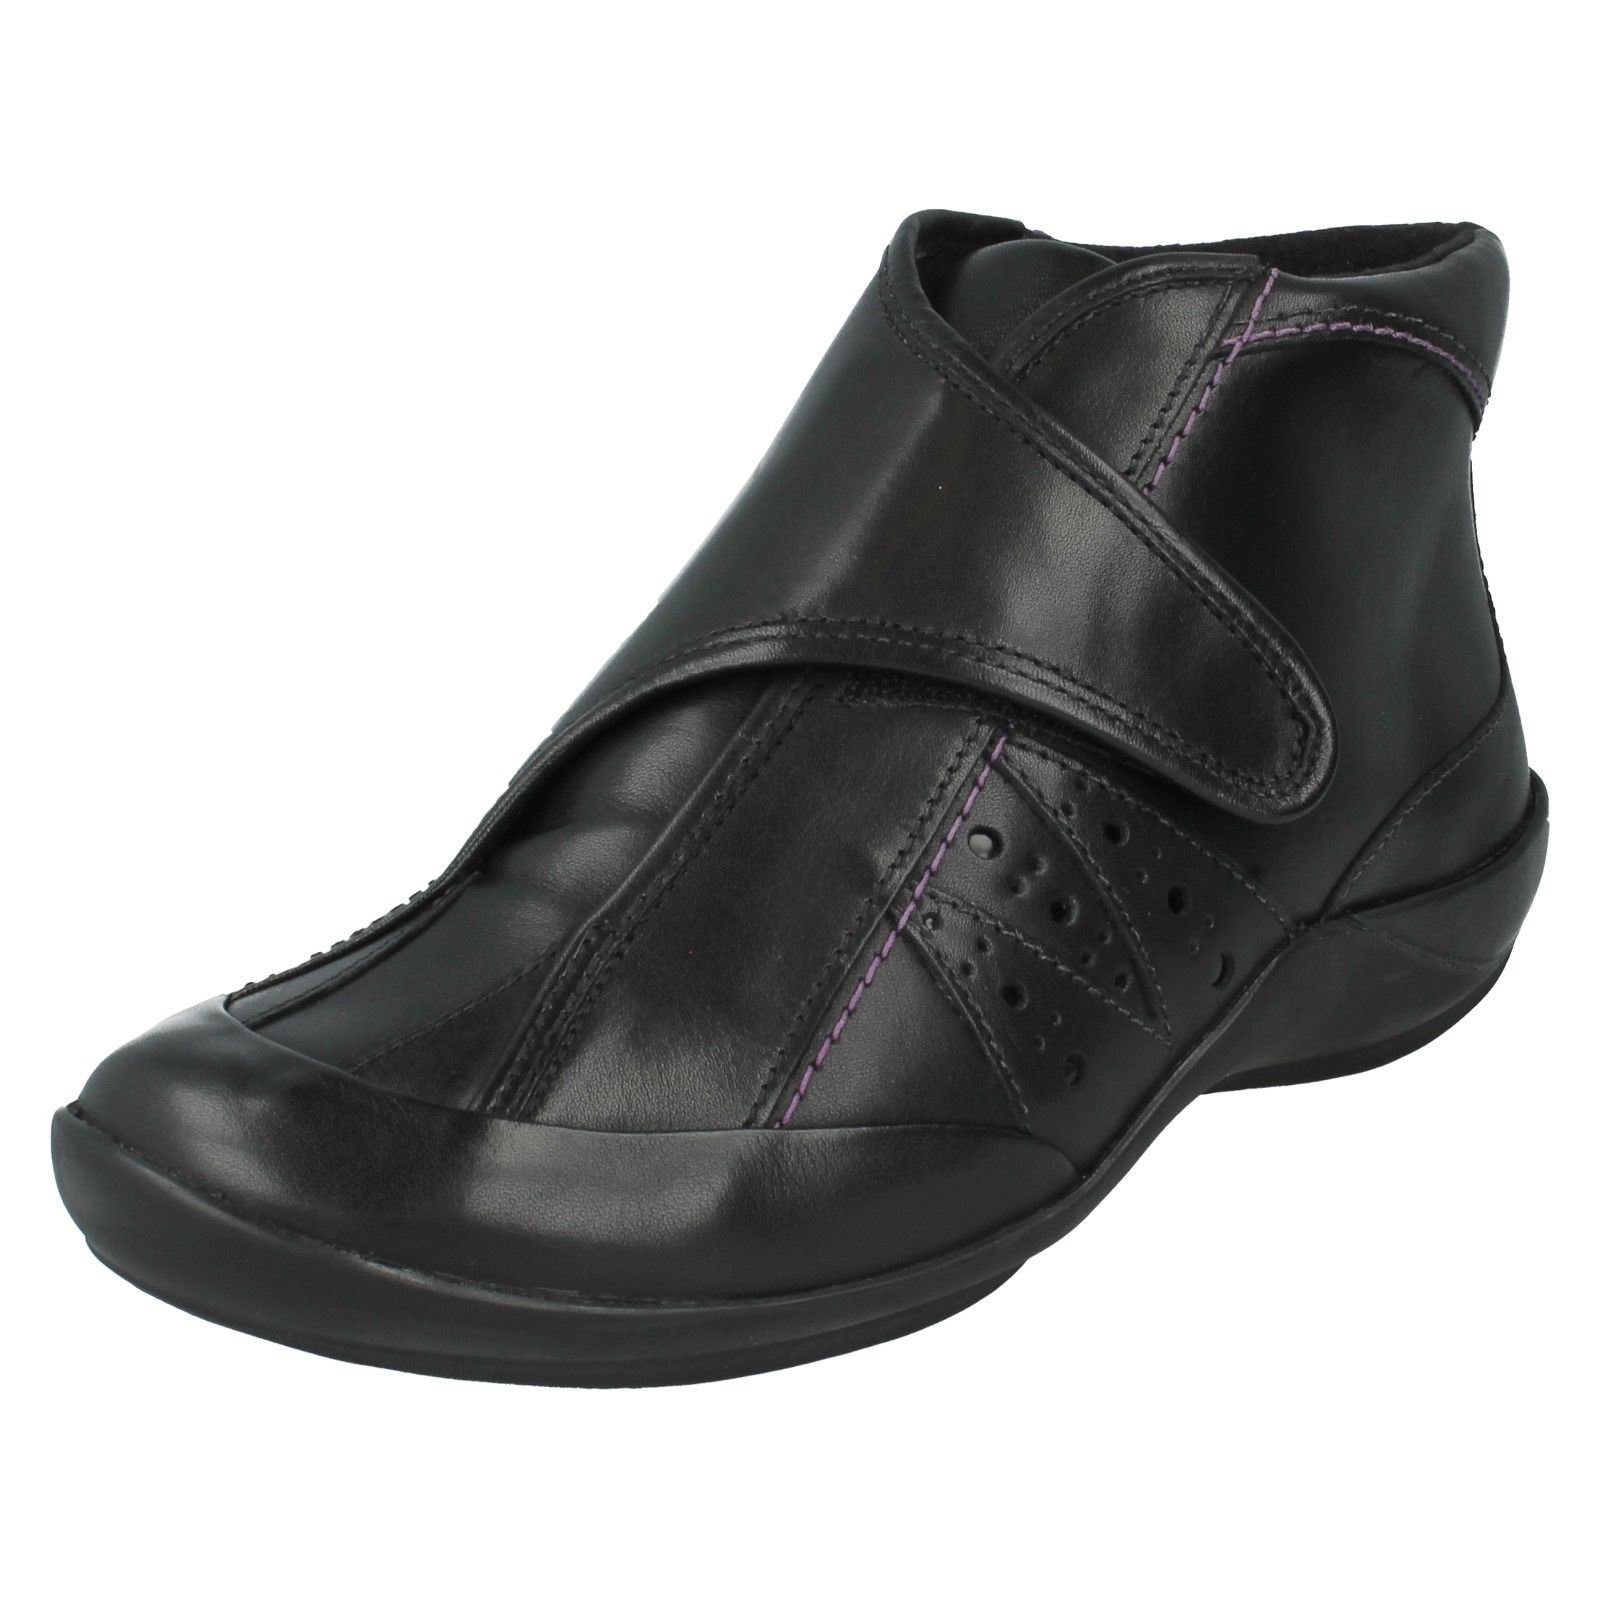 Ladies K by Clarks Wide Fitting Ankle Boots The Style - Mizzle Fine